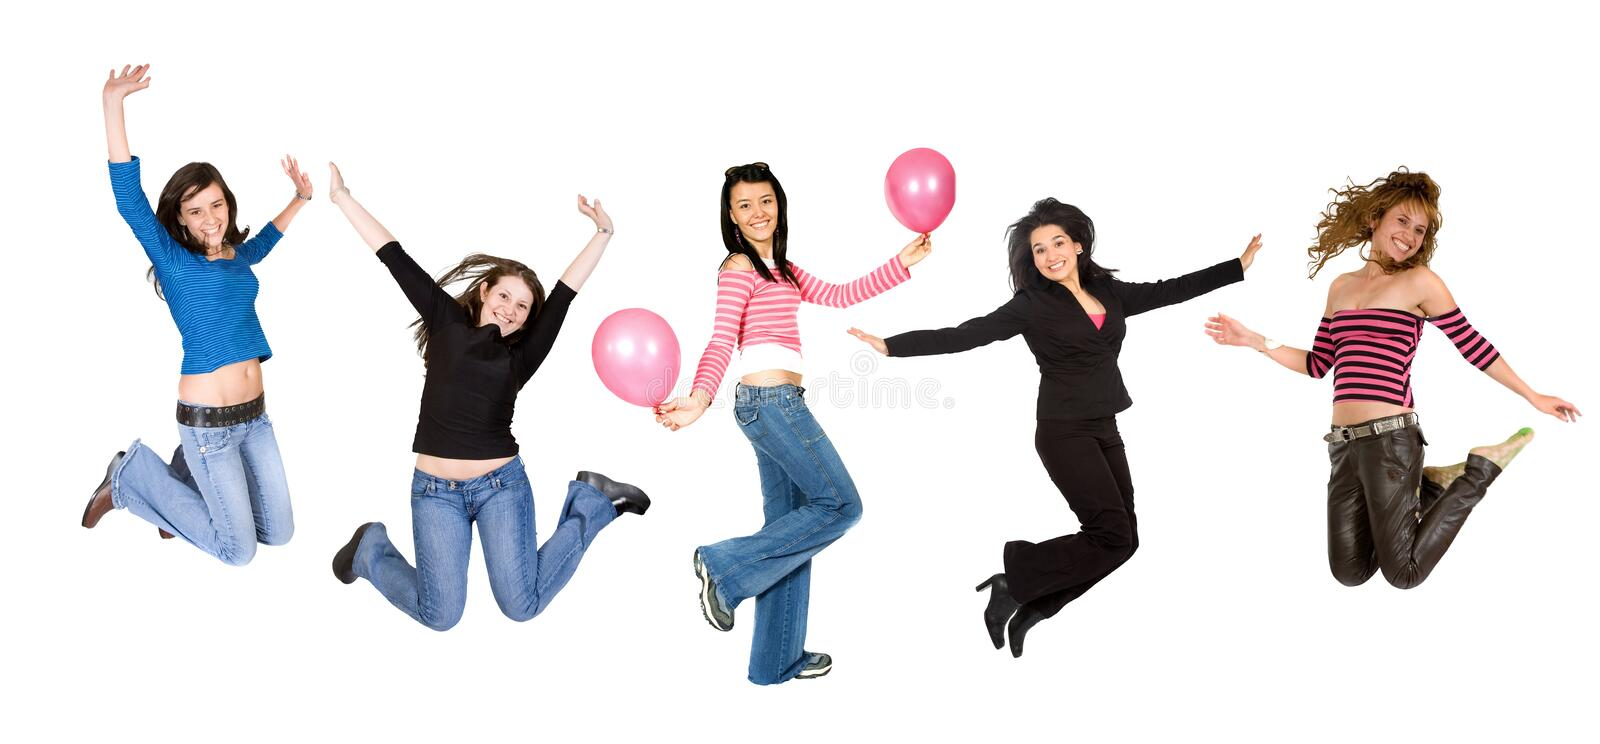 Download Party time stock image. Image of girls, smile, celebration - 9833379